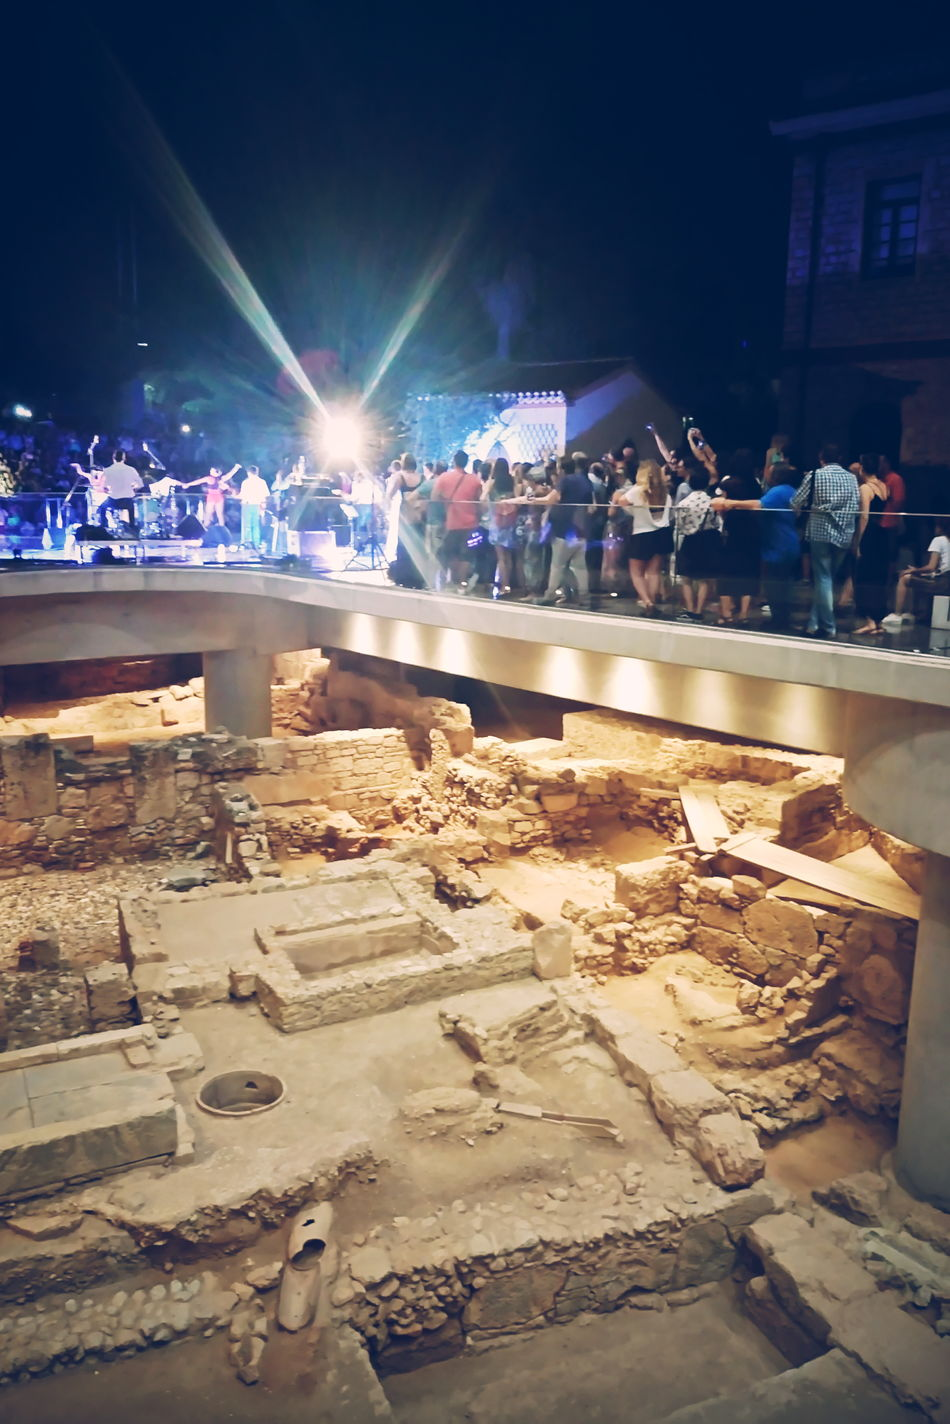 Concert Full Moon Party Athens, Greece Athens Greece Acropolis Museum Concert Photography Ruins From My Point Of View Mobile Photography EyeEm Best Shots Getting Inspired Eye4photography Acropolis, Athens Our Best Pics Museum EyeEm Masterclass Taking Photos Greek Old Ruin Sony Mobile Ancient Civilization Night Lights TakeoverContrast